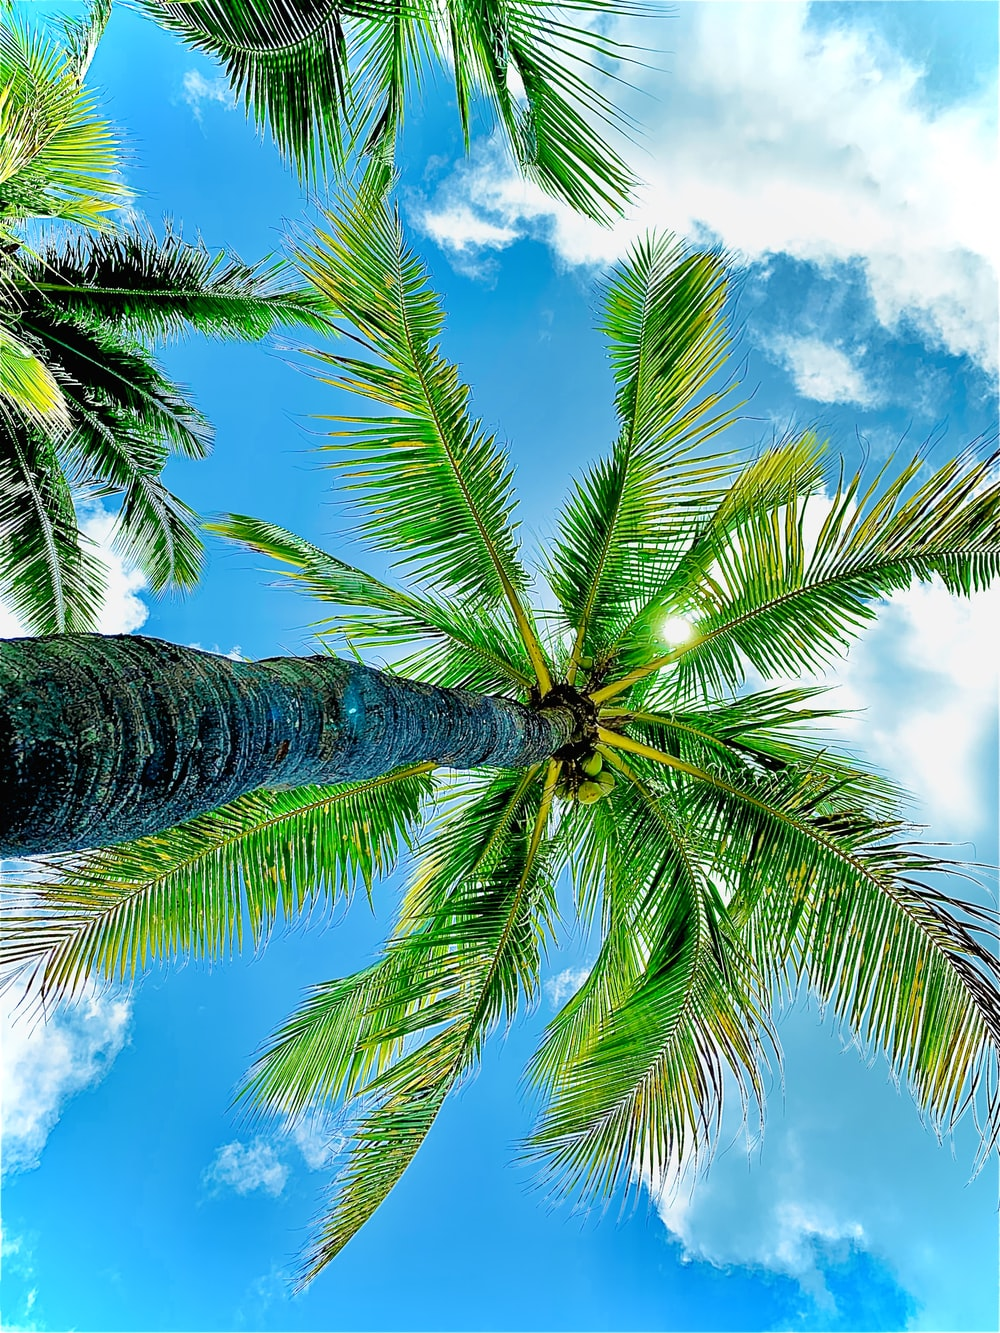 low-angle photography of green coconut trees under blue and white sky during daytime